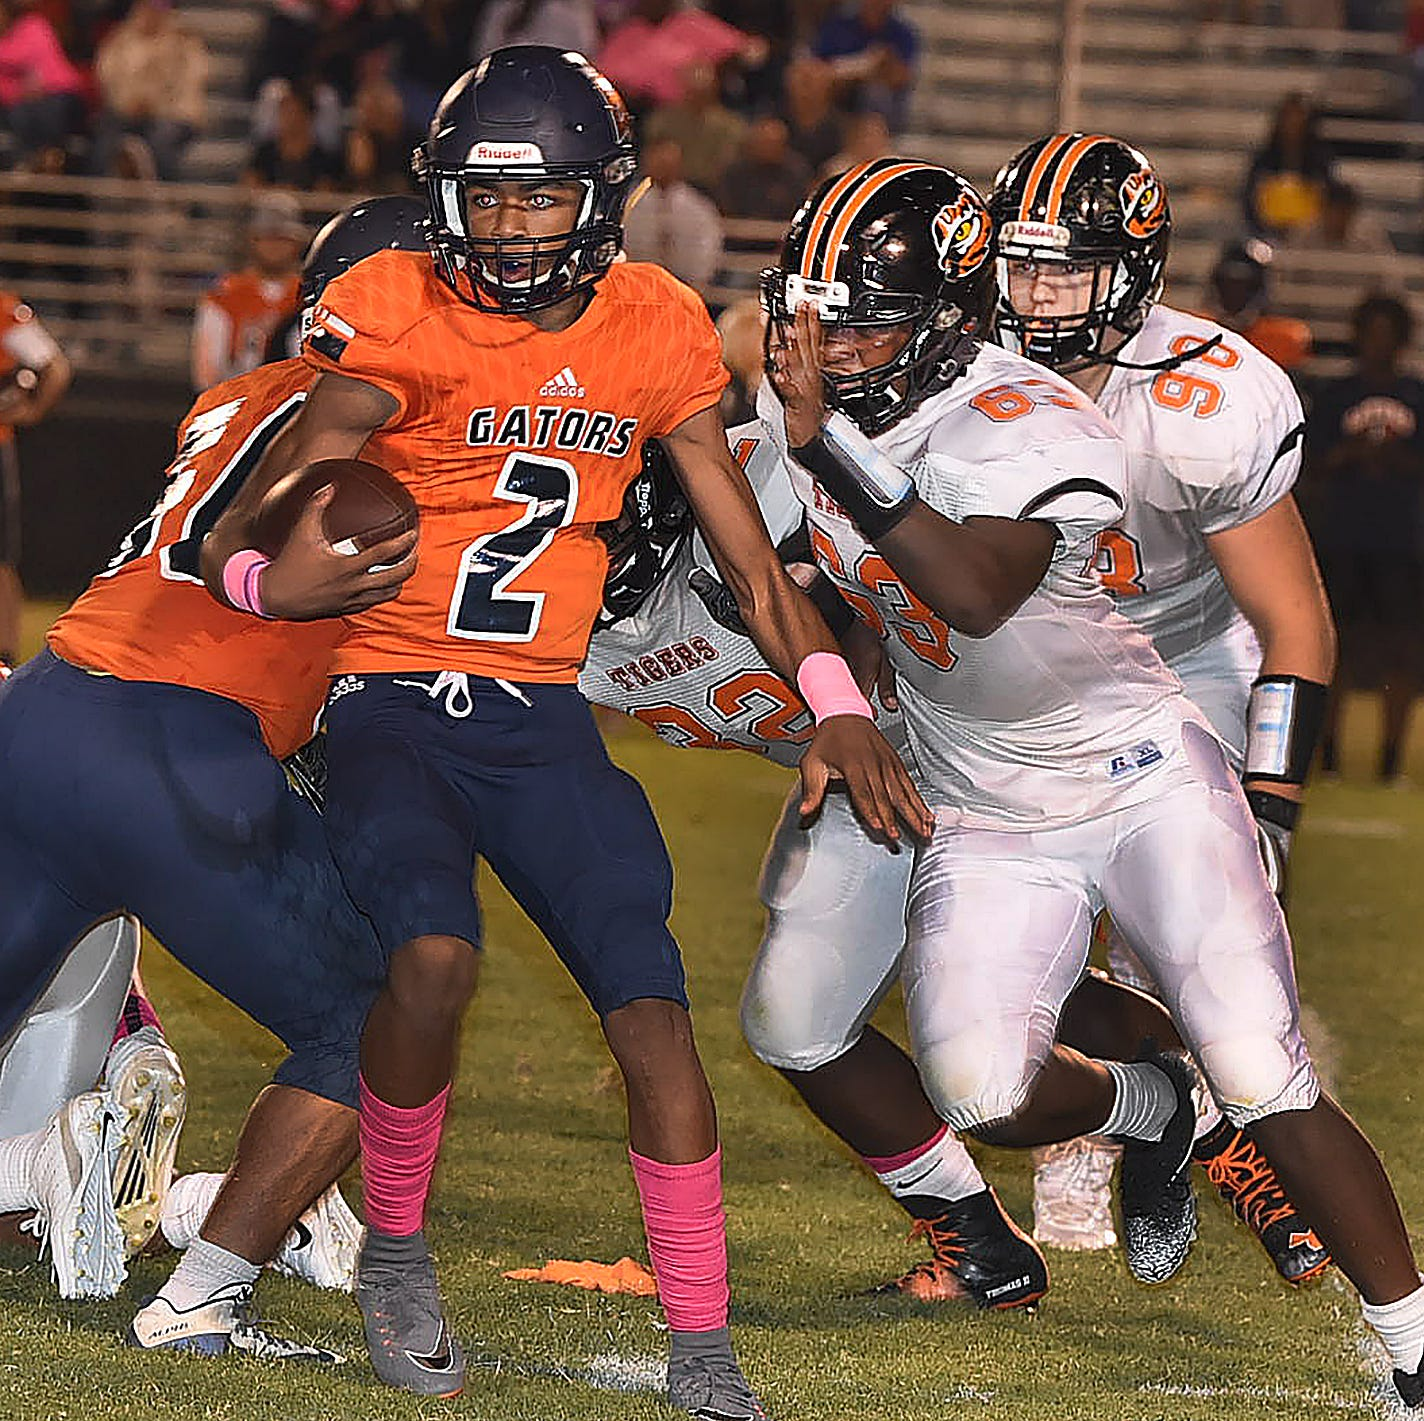 Opelousas continues quest for winning season